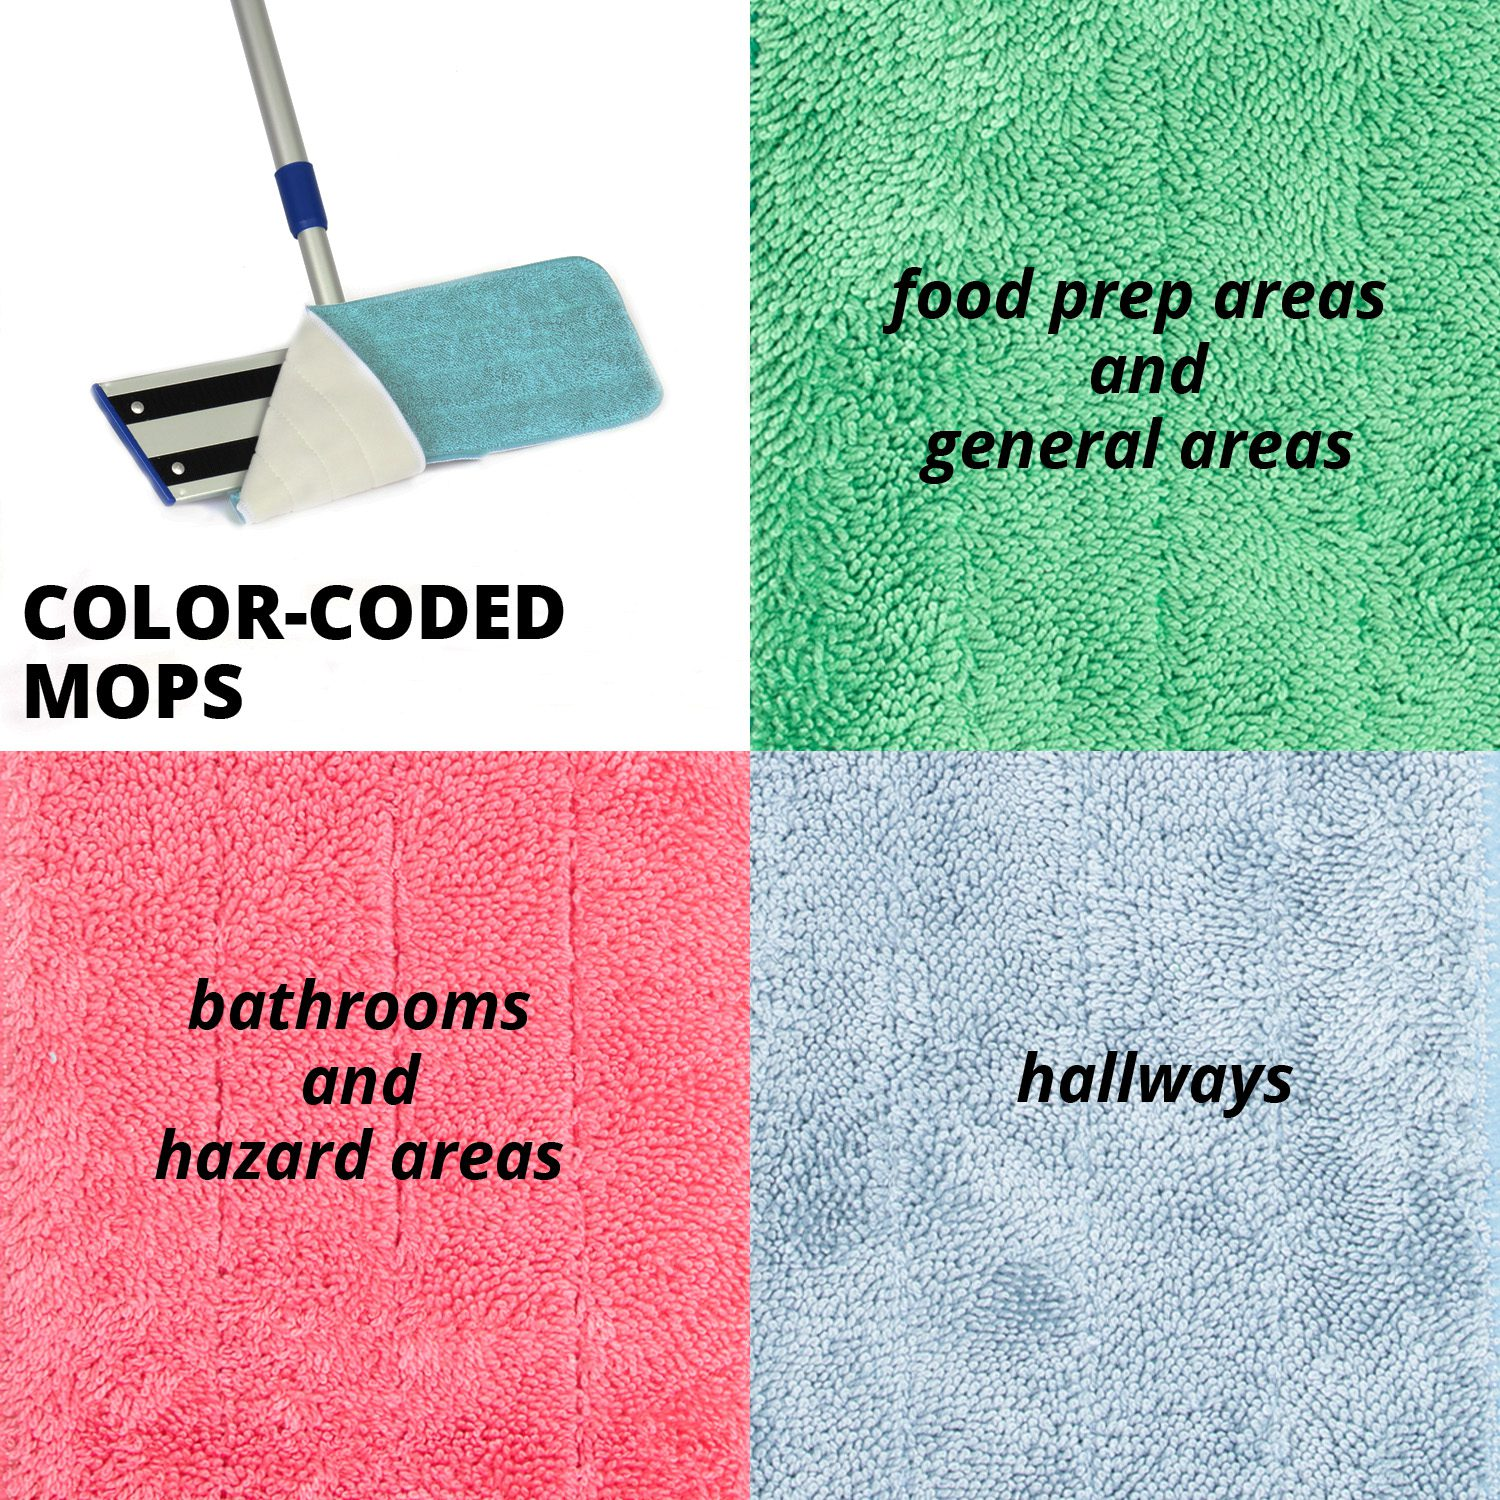 Color-coded mops